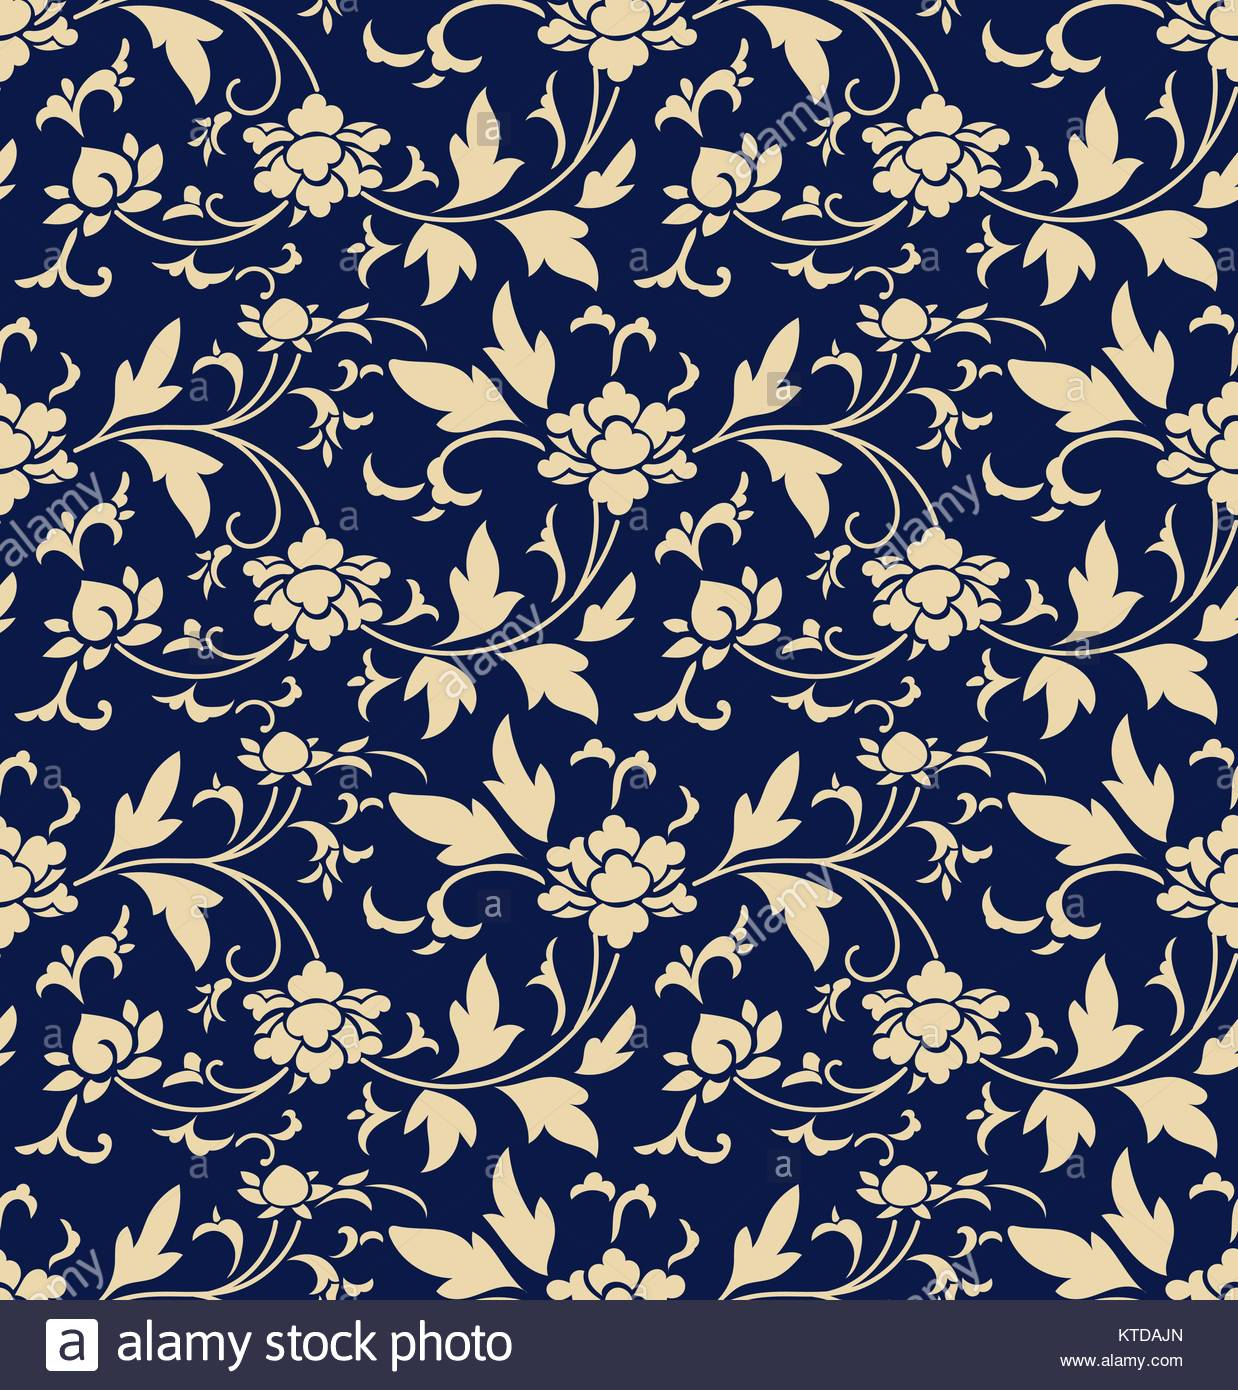 Seamless background retro navy blue botanic garden flower vine 1238x1390